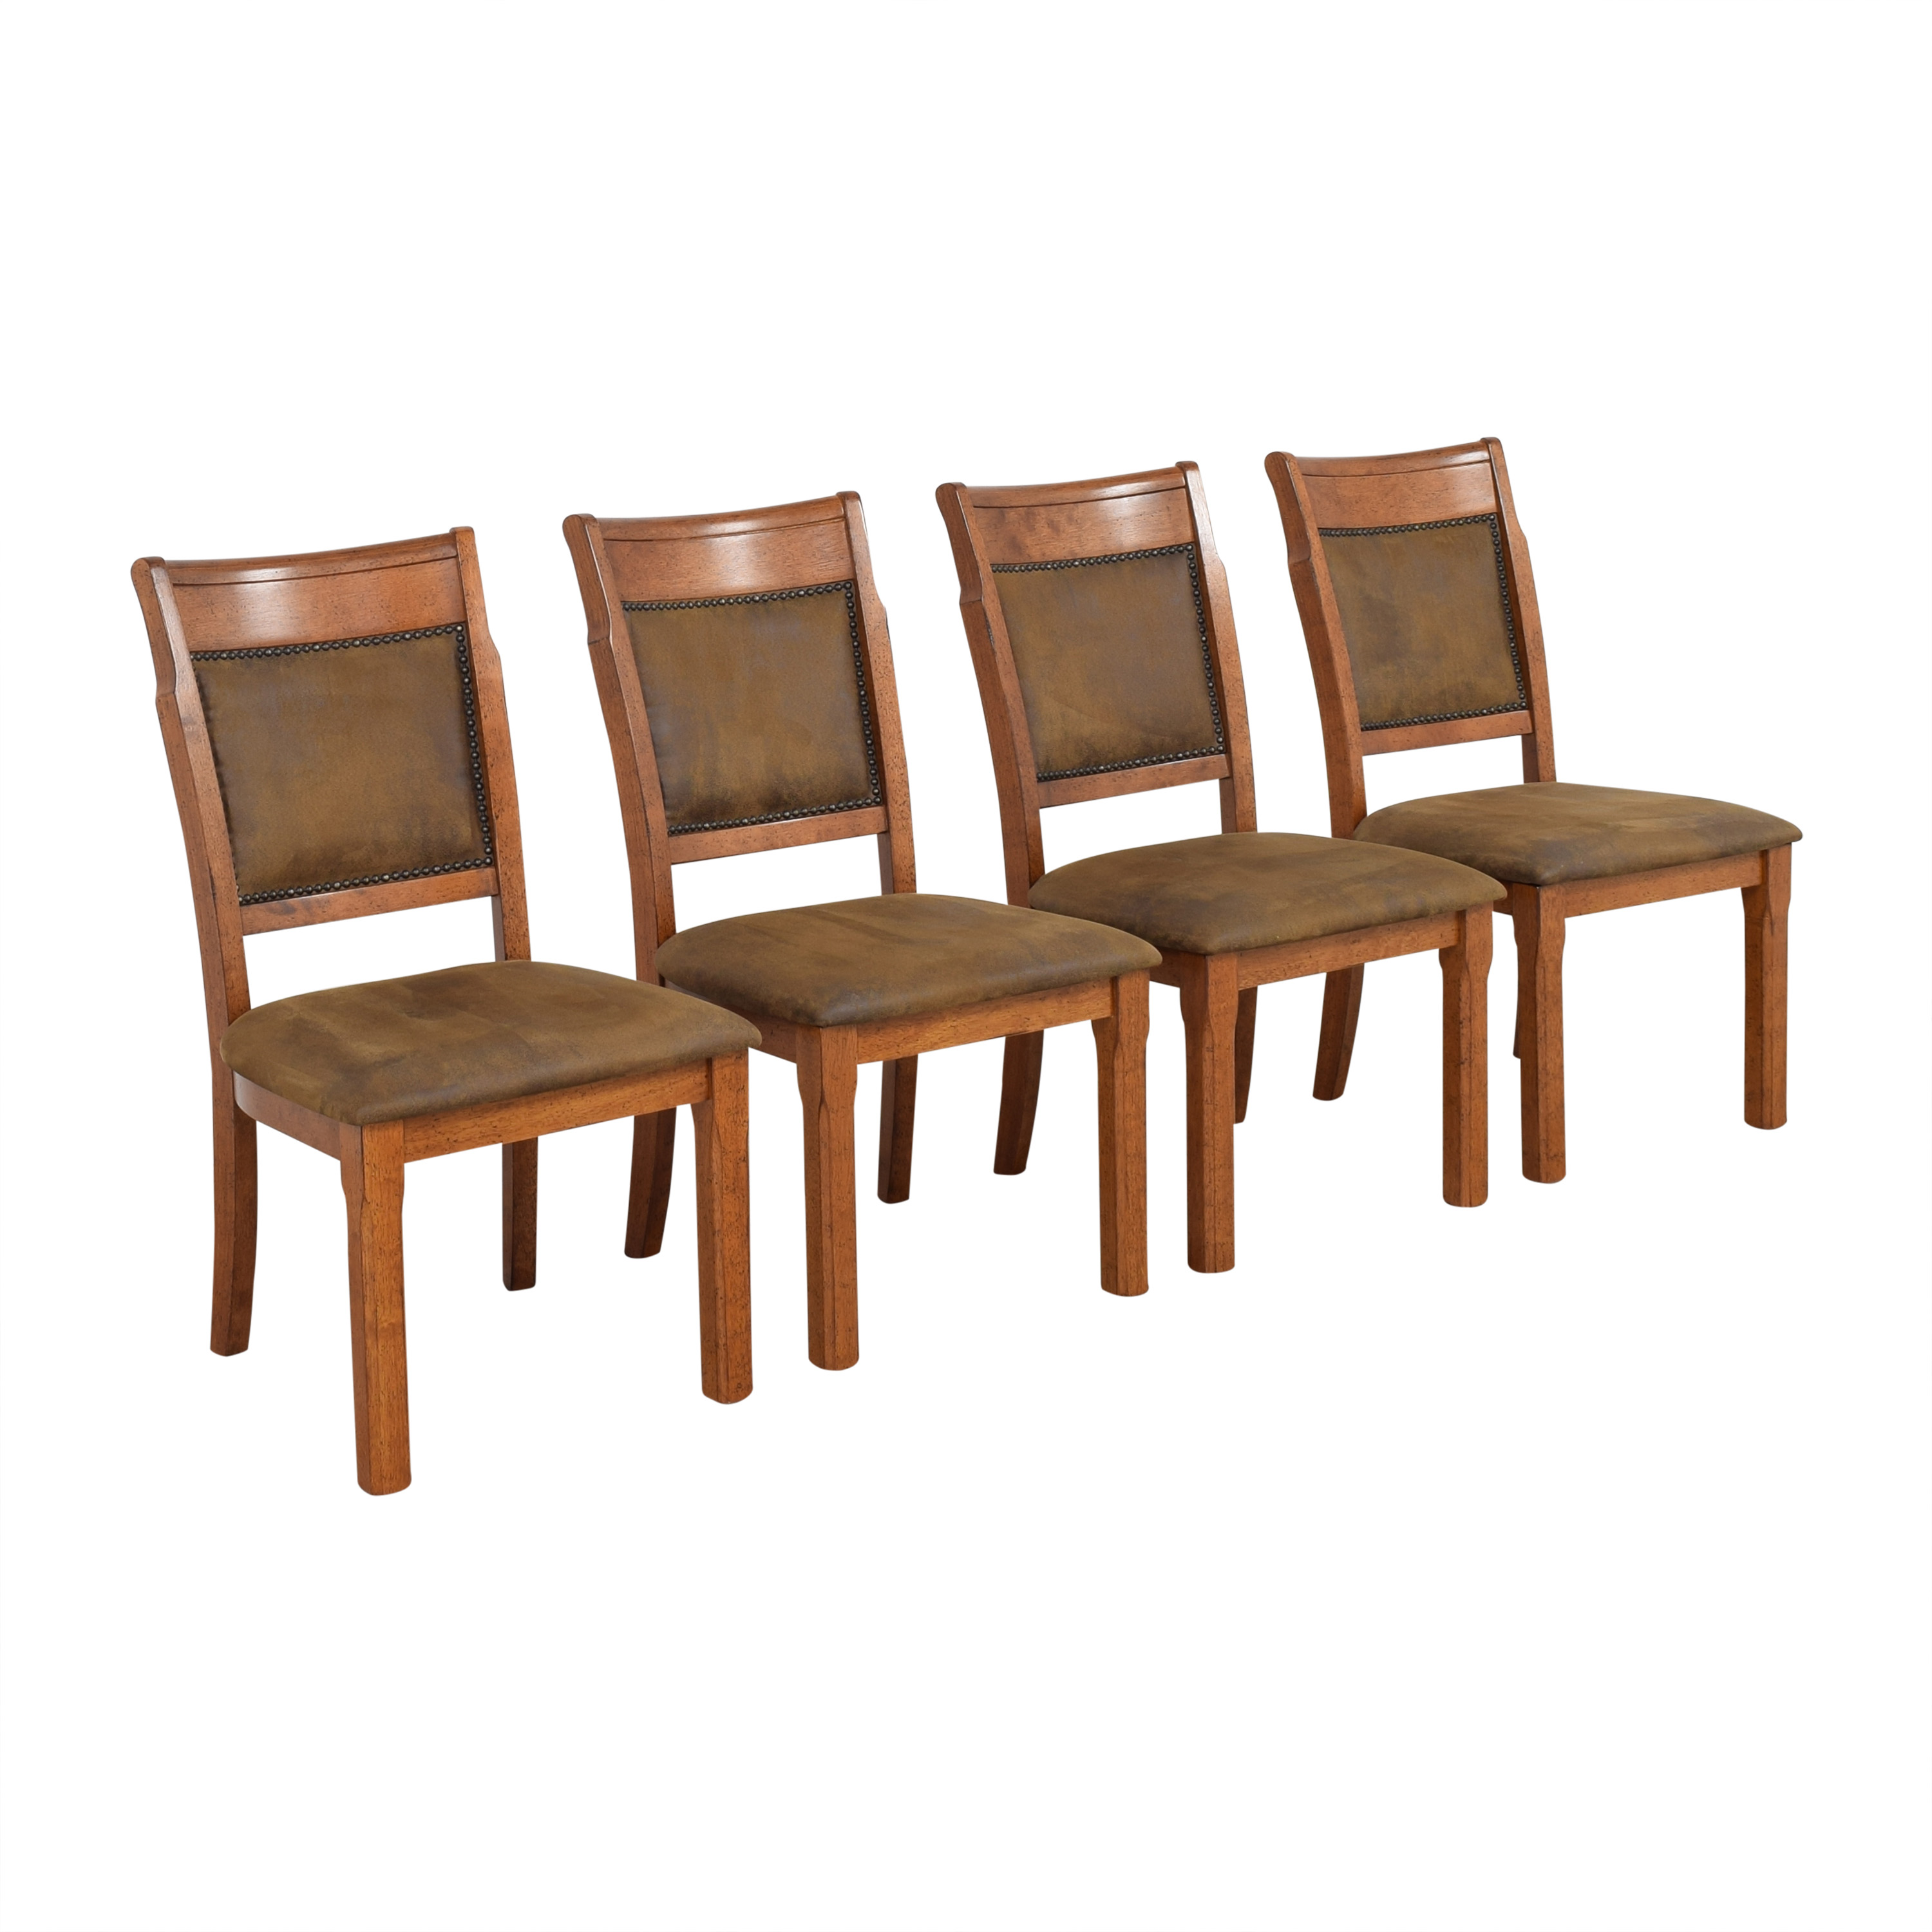 shop Raymour & Flanigan Soleste Dining Chairs Raymour & Flanigan Chairs